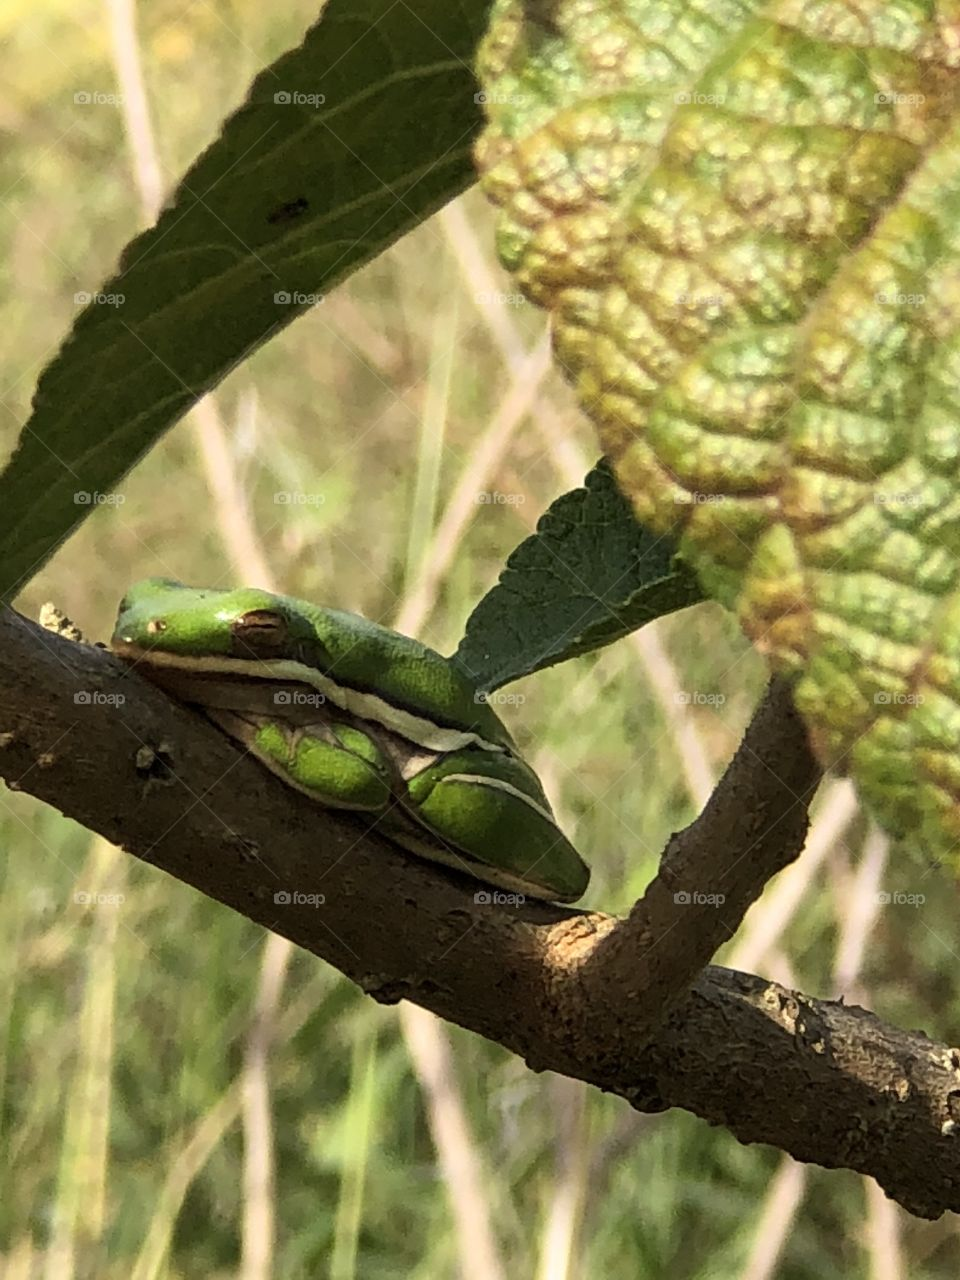 Tree frog taking a nap